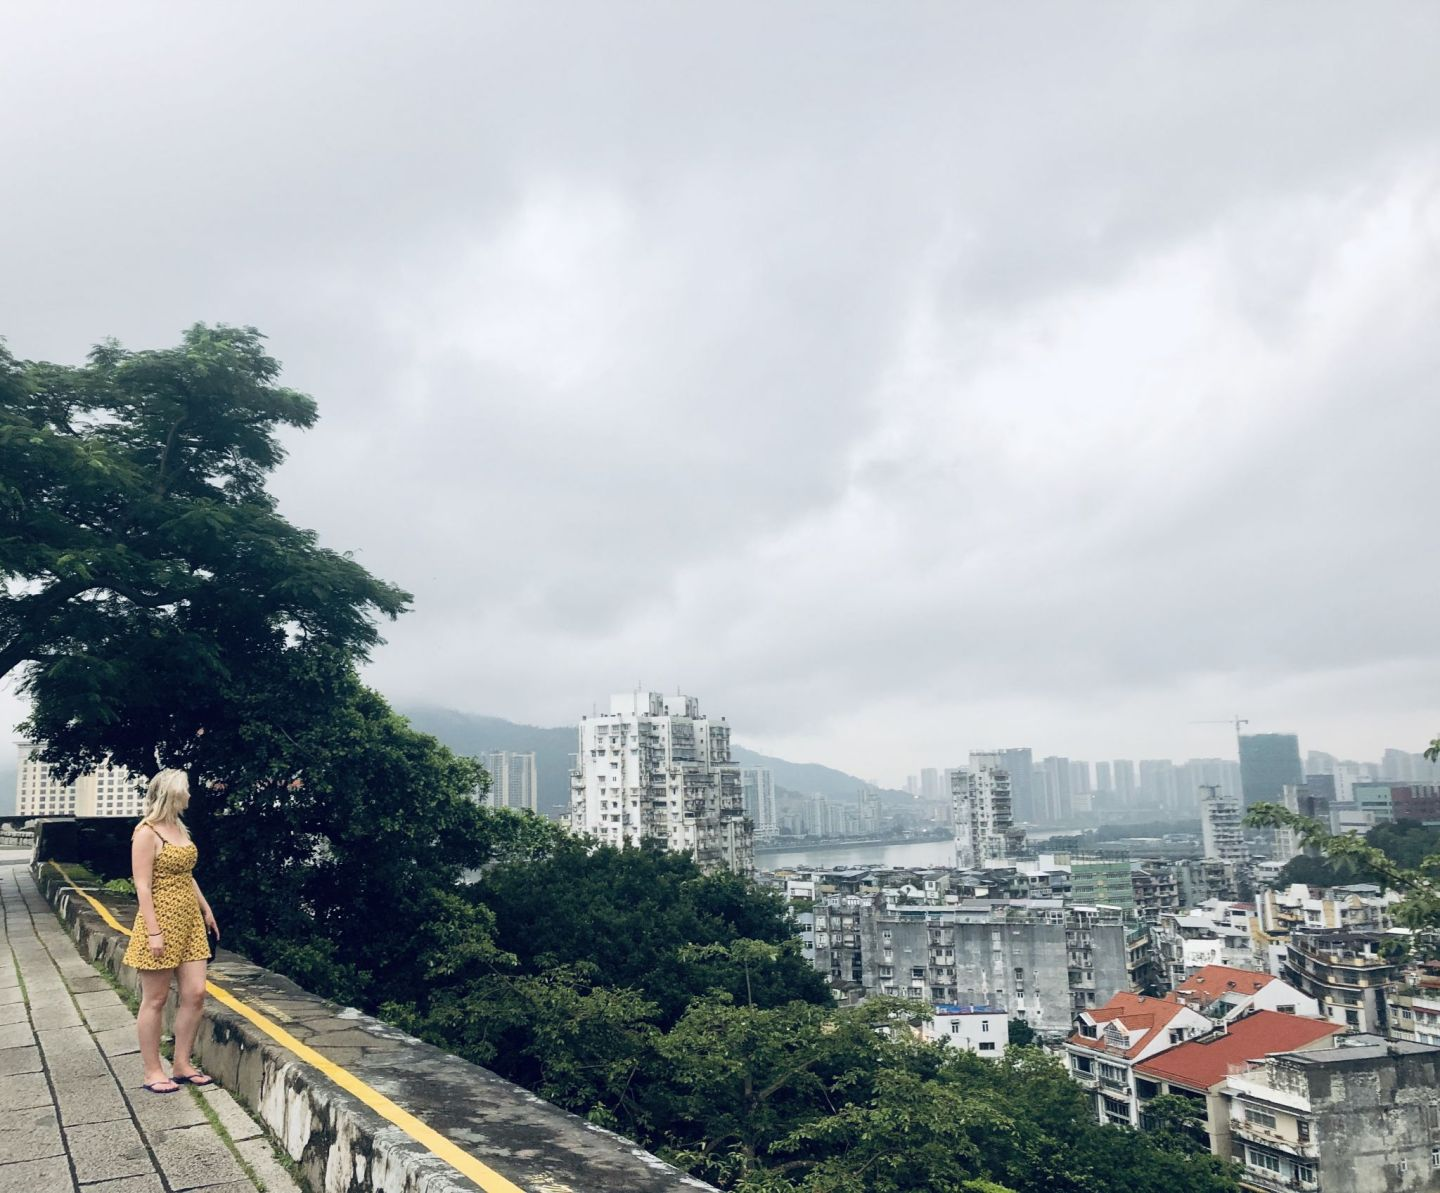 Looking over Macau, China